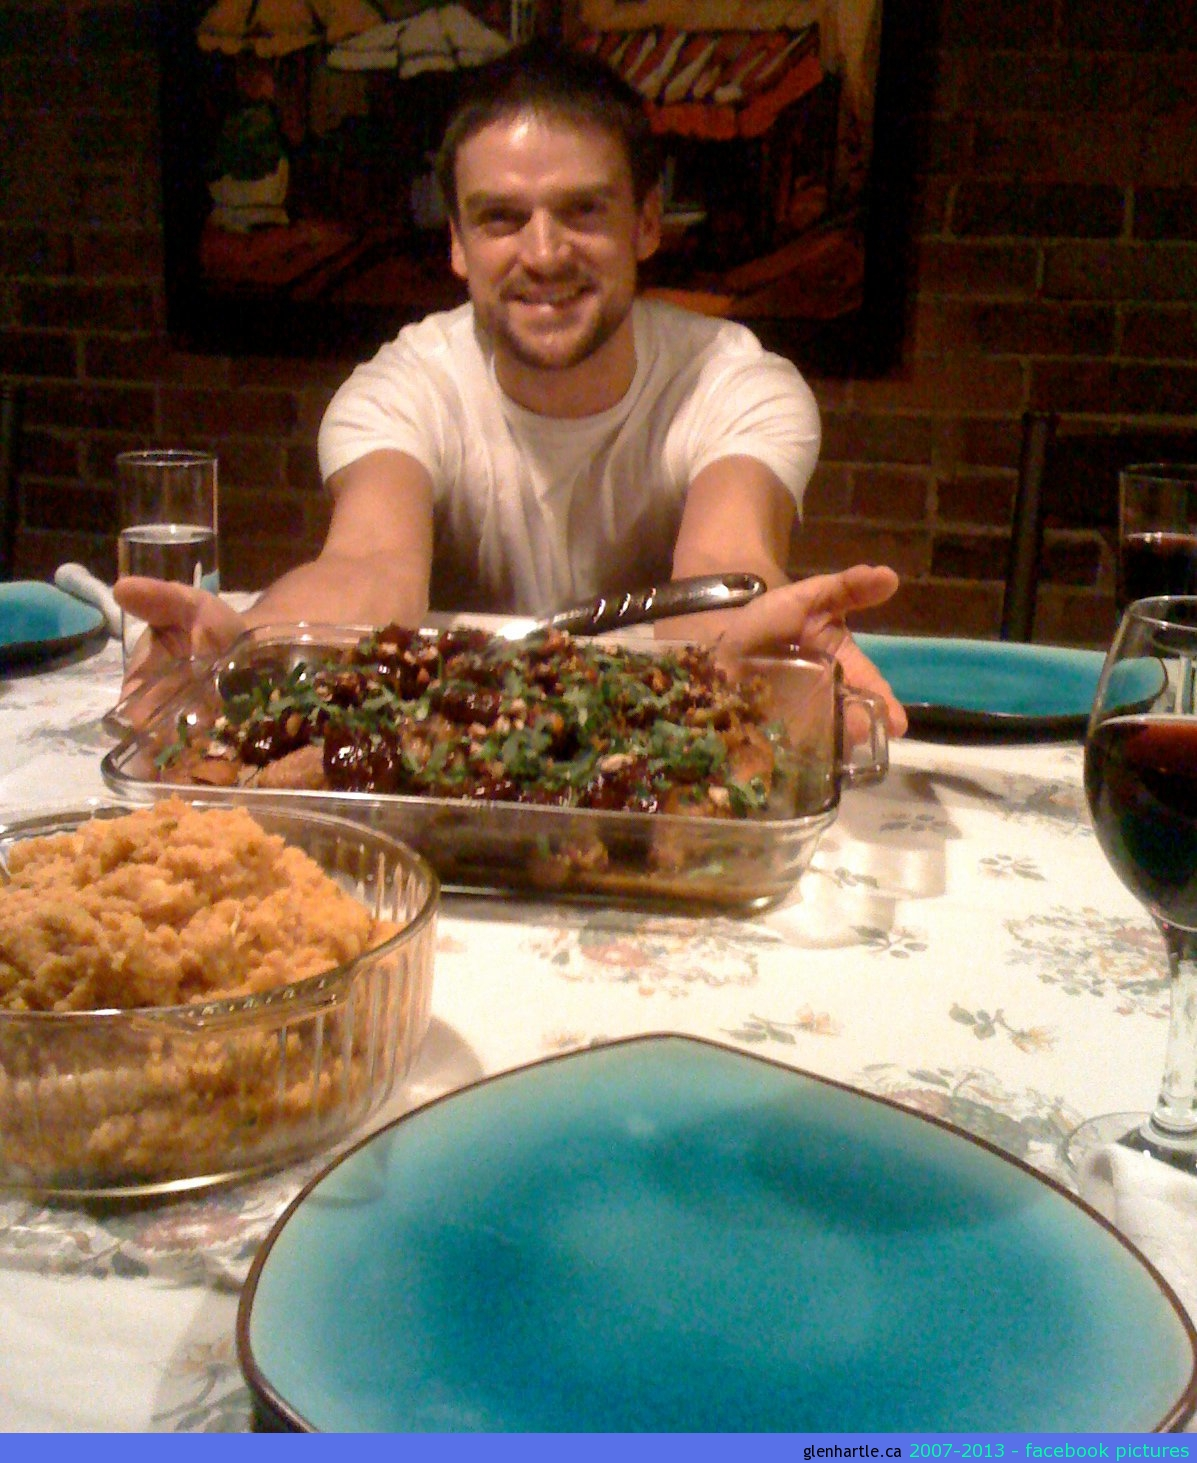 Dinner was compliments of me from epicurious recipes: Crushed Peas with Feta and Scallions, Braised Chicken with dates and Moroccan spices, Pumpkin Potato puree.http://www.epicurious.com/recipes/food/views/Crushed-Peas-with-Feta-and-Scallions-358562http://www.epicurious.com/recipes/food/views/Braised-Chicken-with-Dates-and-Moroccan-Spices-361592http://www.epicurious.com/recipes/food/views/Pumpkin-Potato-Puree-358093